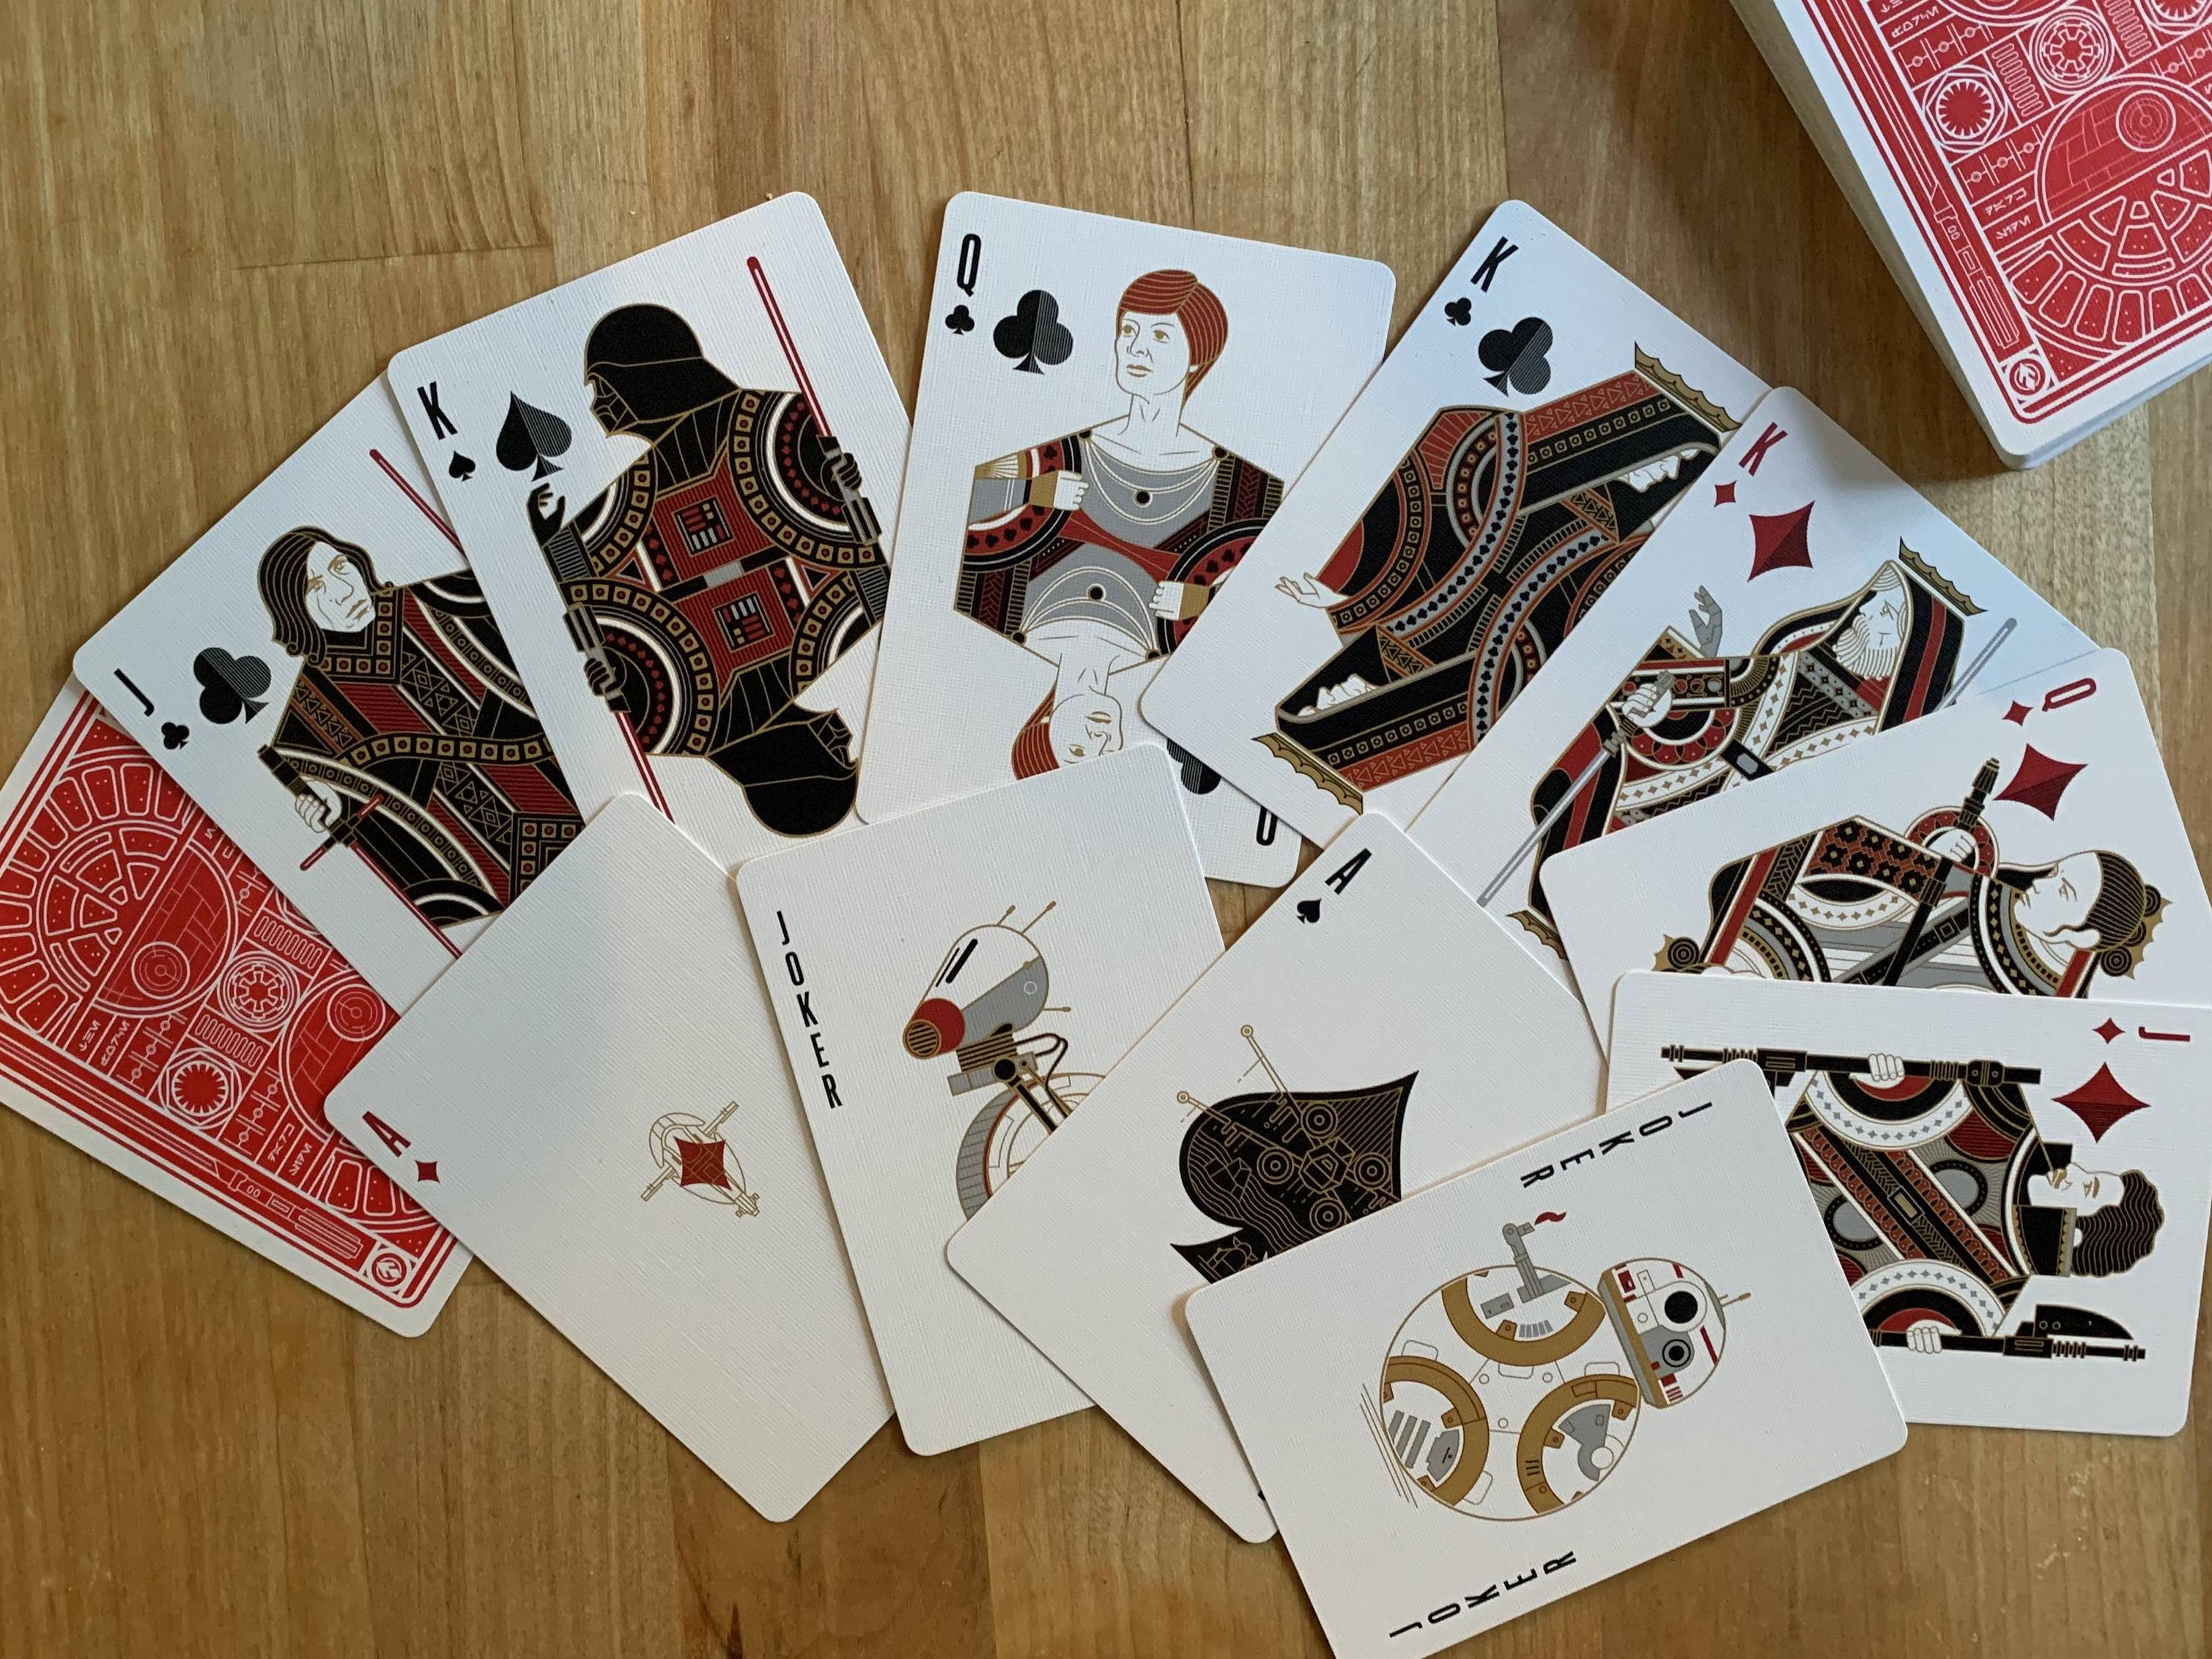 Hands down the coolest set of playing cards